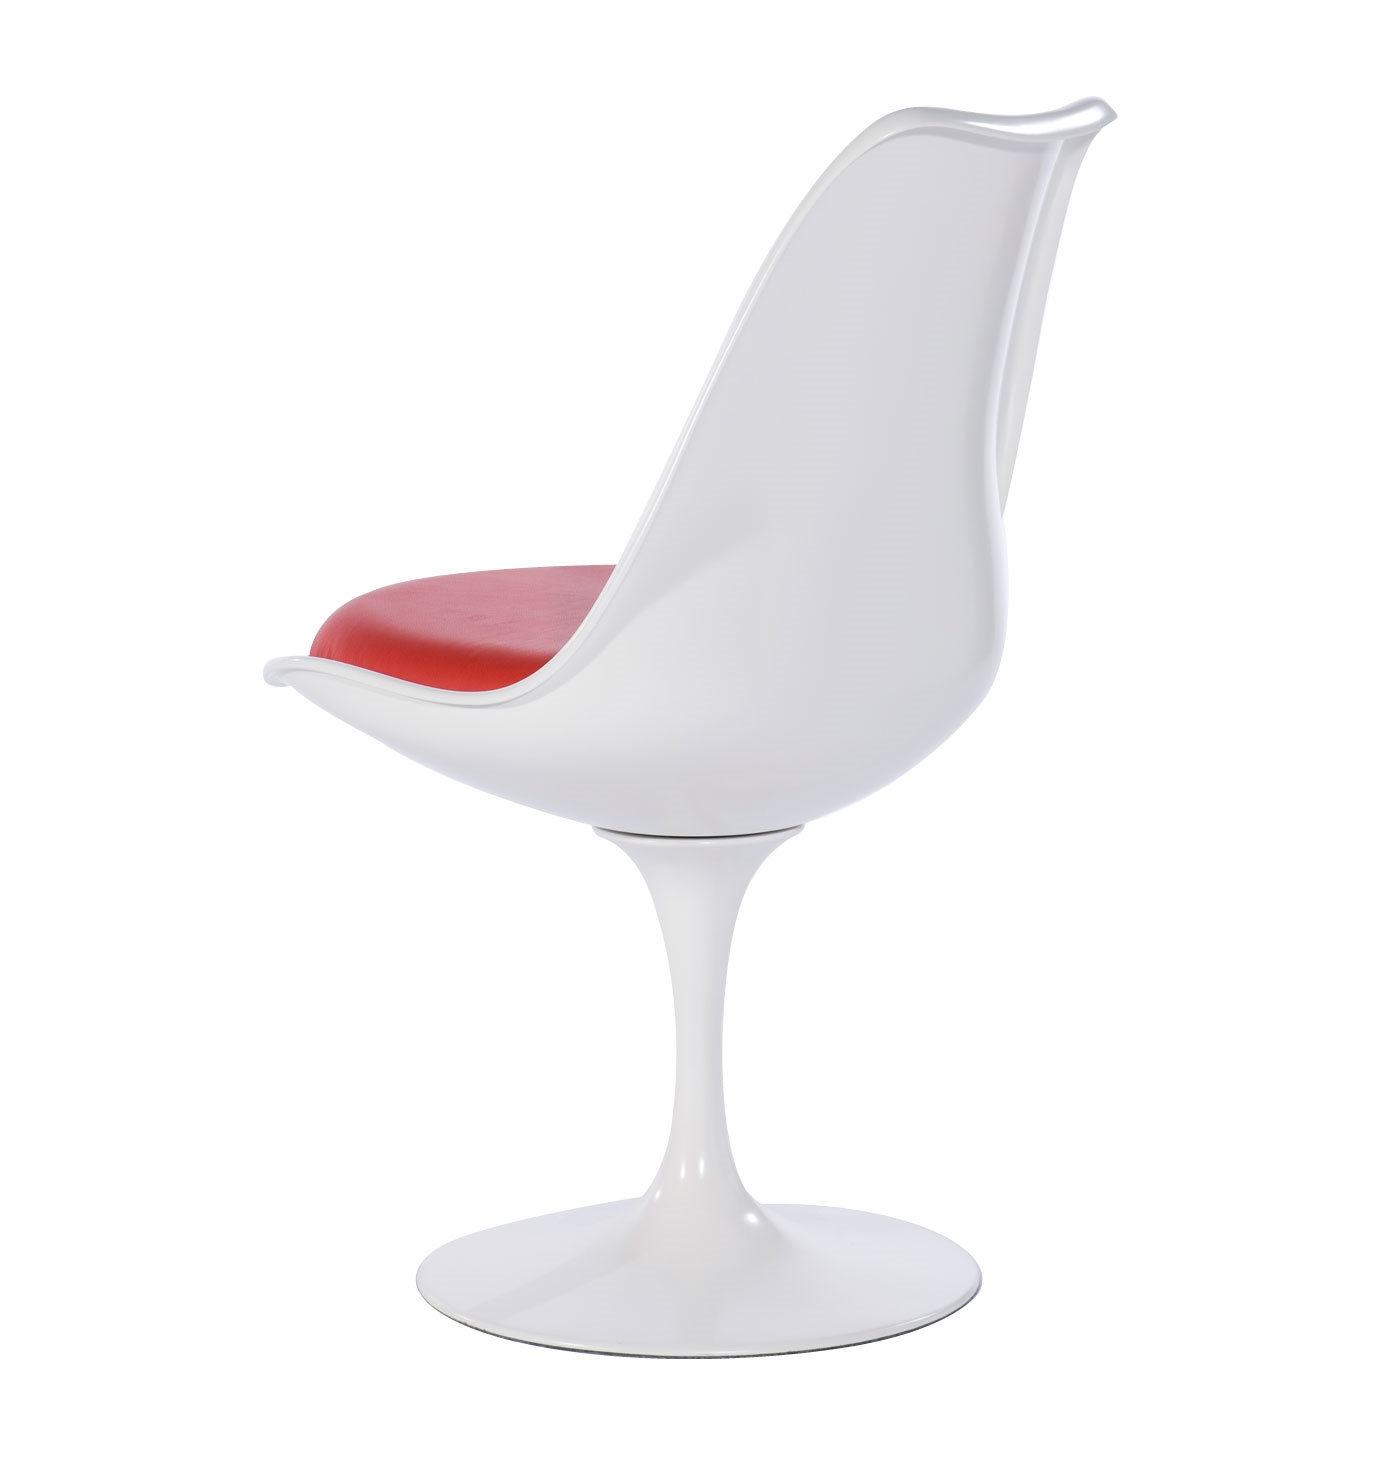 ... Reply Eero Saarinen Tulip Chair white with cuscion red ...  sc 1 st  Newformsdesign : saarinen tulip chair knock off - Cheerinfomania.Com